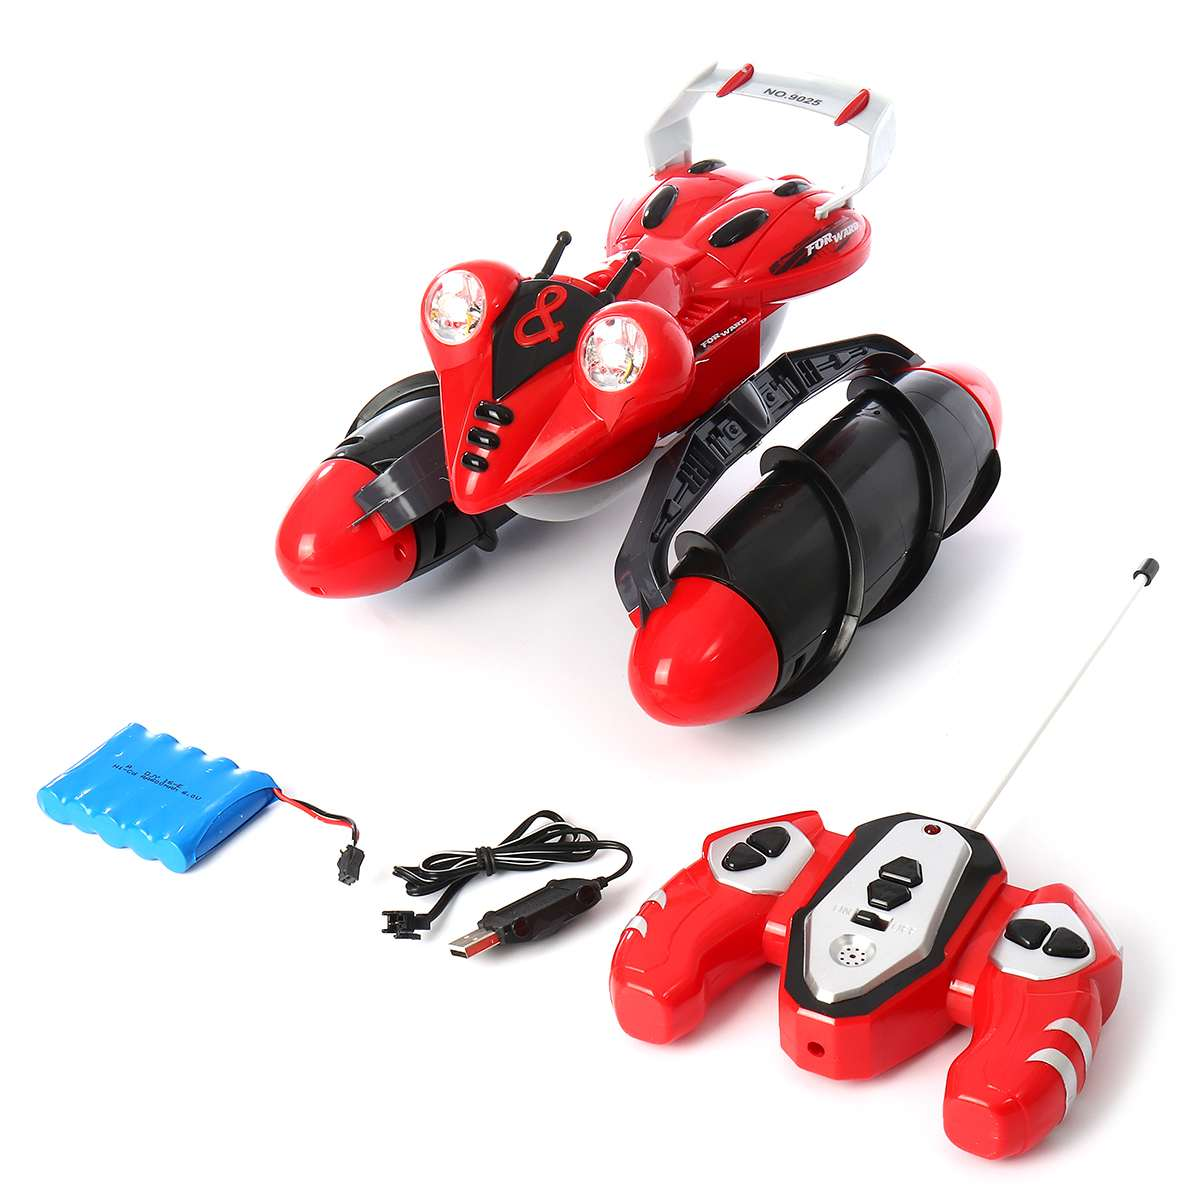 Electric RC Car Remote Control Amphibious Vehicle Off-Road Truck Toy All-terrain Ship Transportation Children Kids GiftsElectric RC Car Remote Control Amphibious Vehicle Off-Road Truck Toy All-terrain Ship Transportation Children Kids Gifts